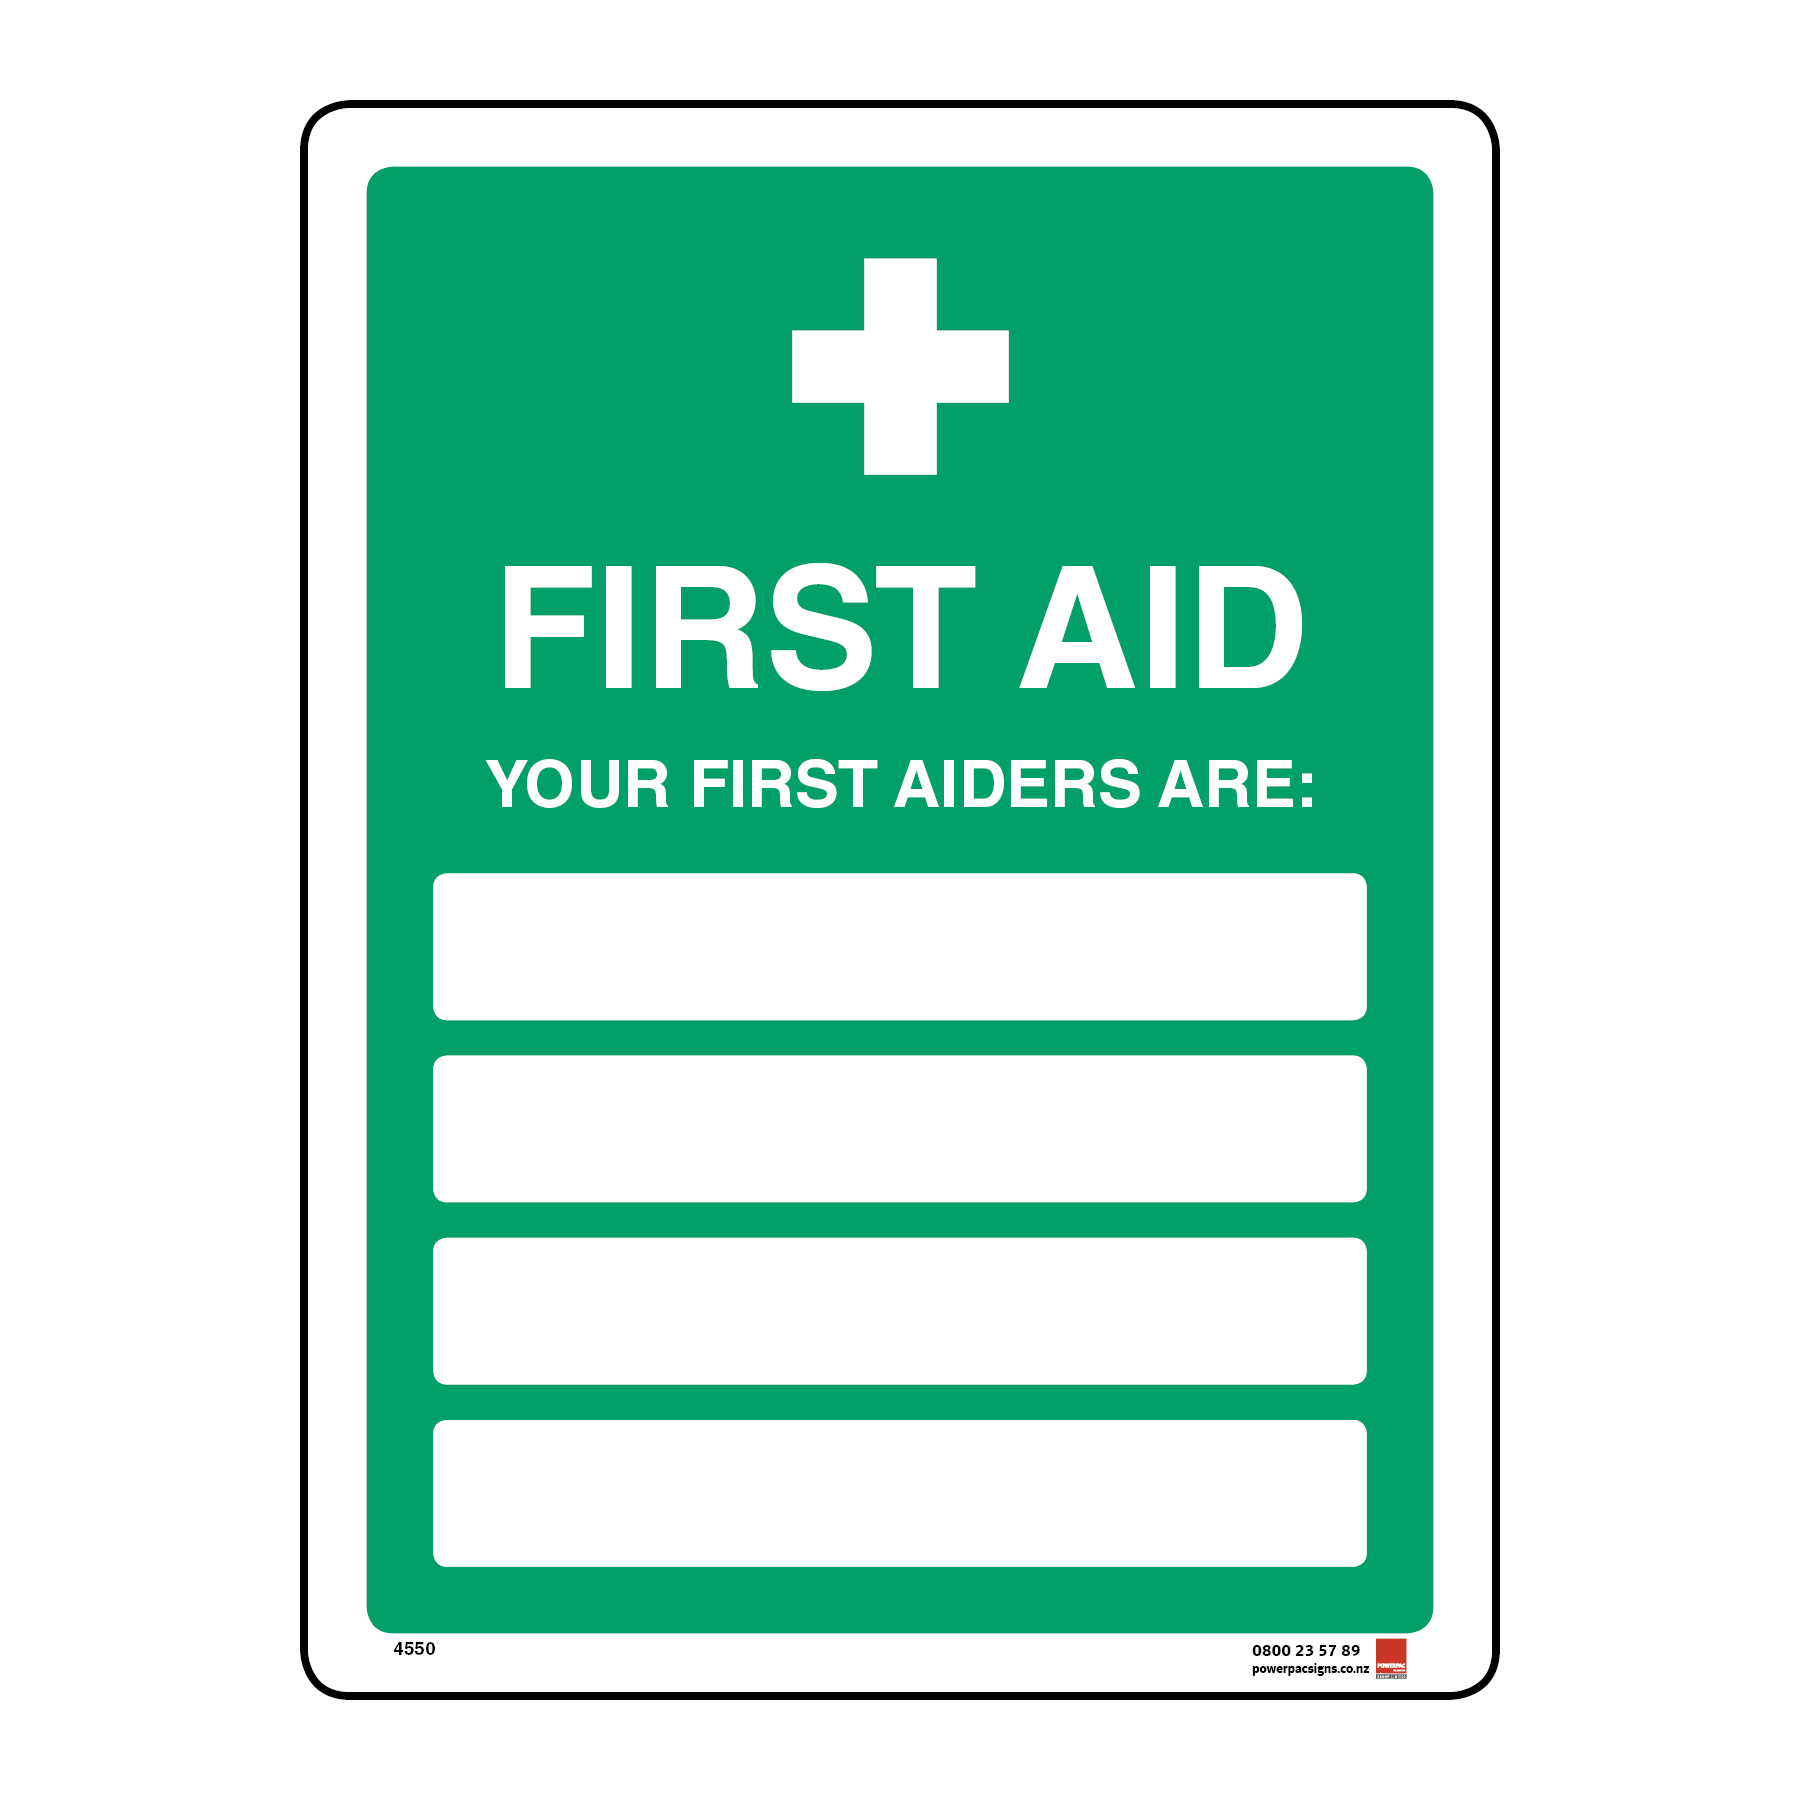 First Aid Your First Aiders Are